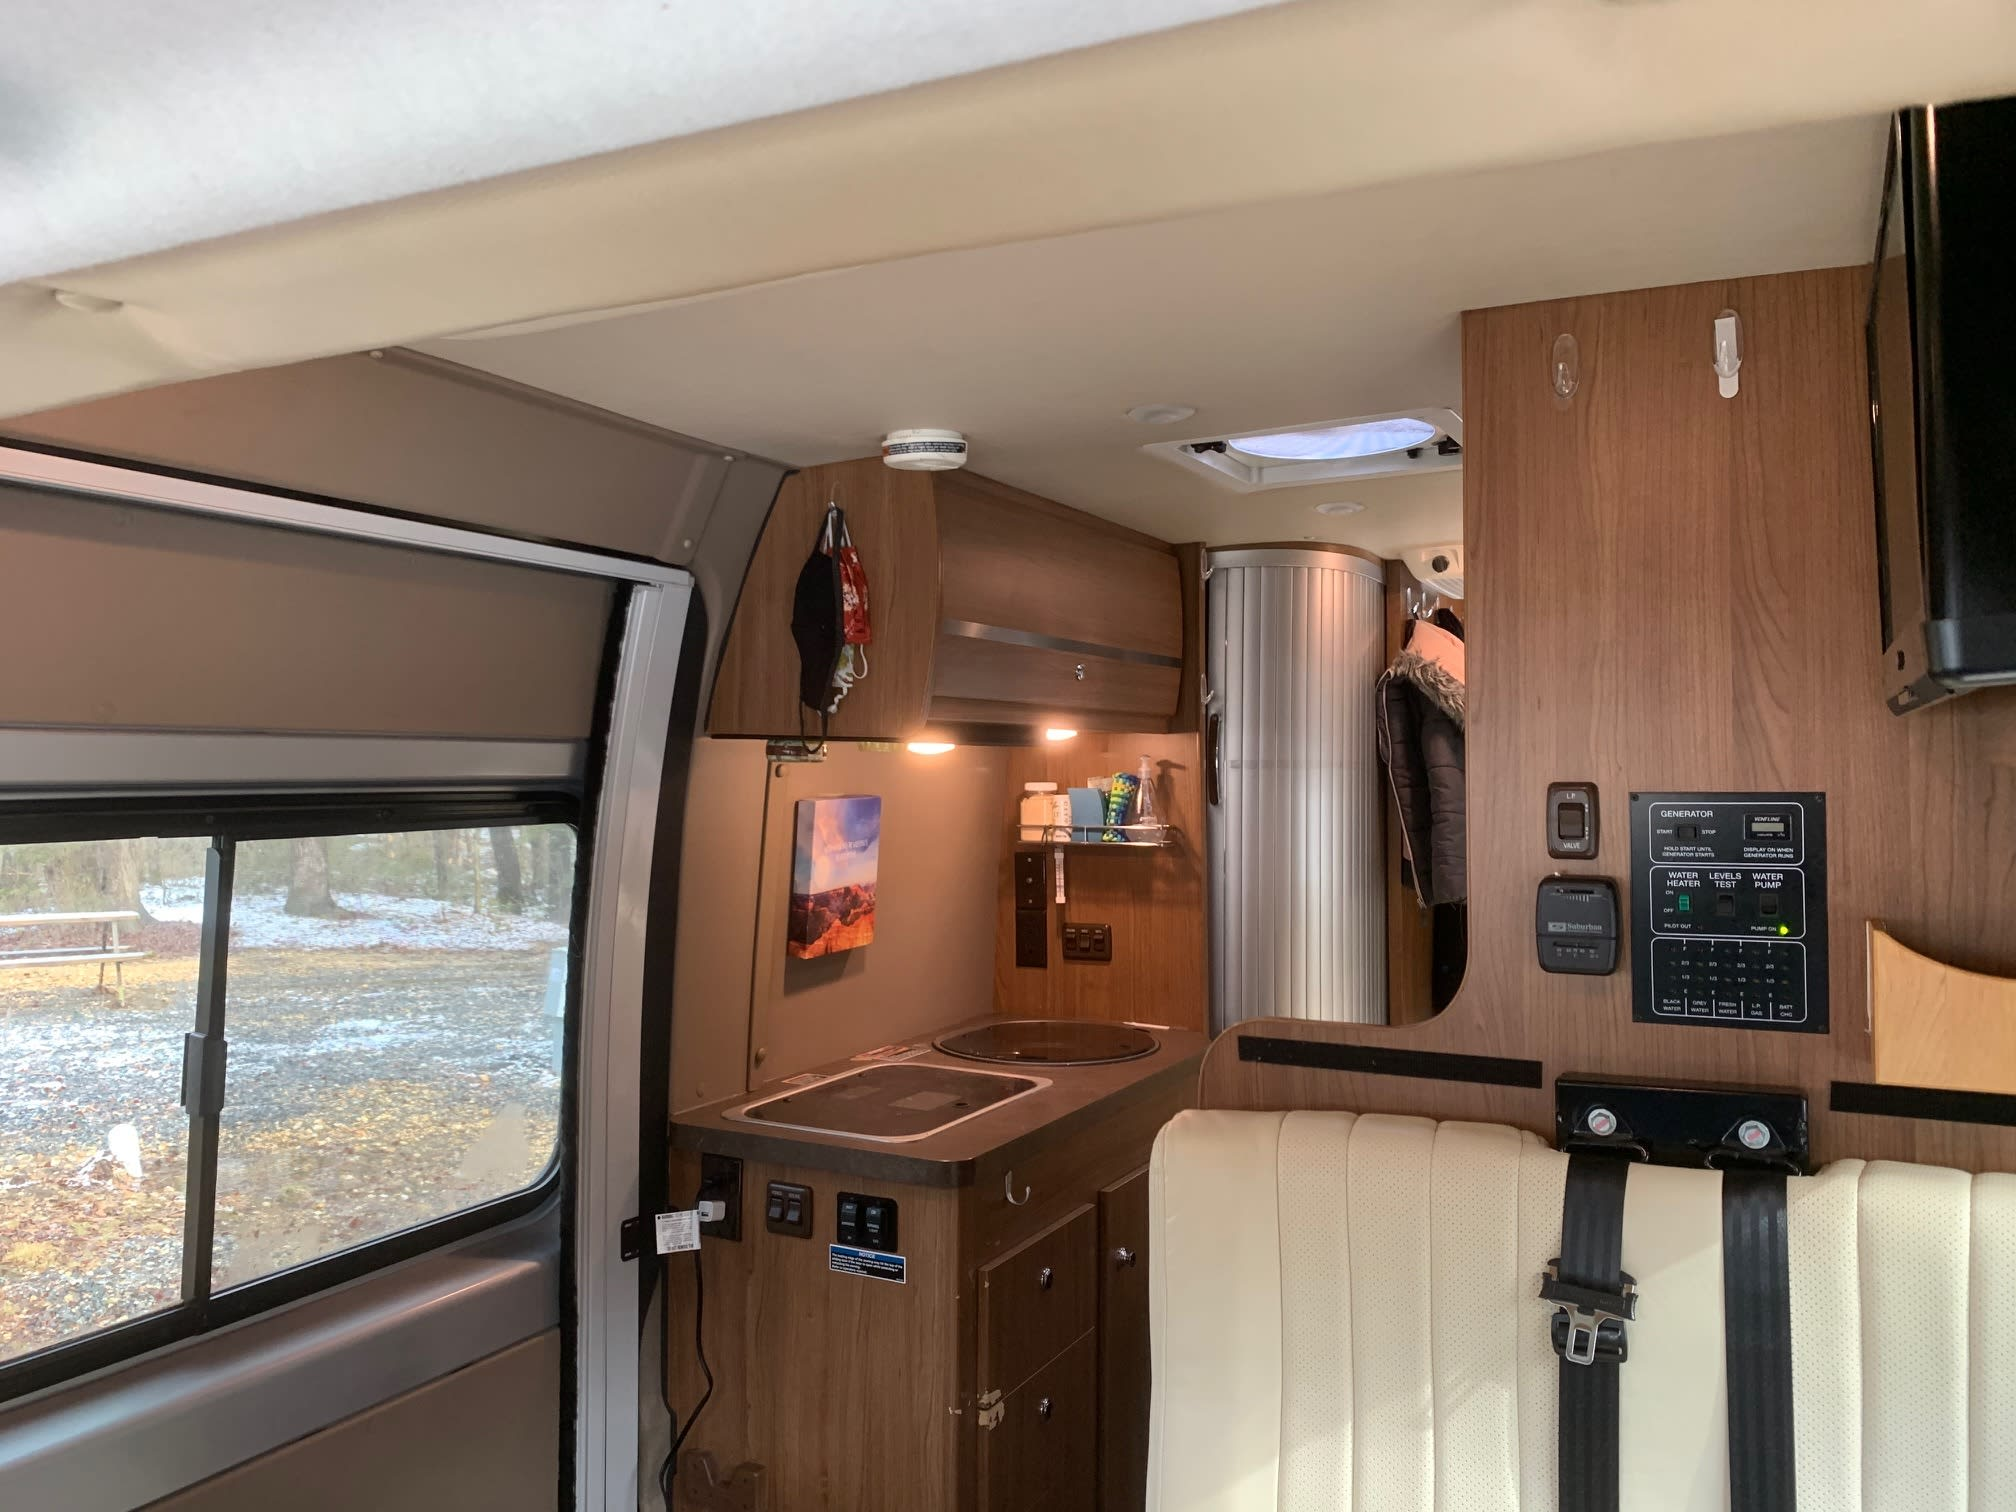 View of the stove and sink, and sliding door -which has a full-coverage accordion screen door (it's in the closed position in this photo). Winnebago Travato 2015